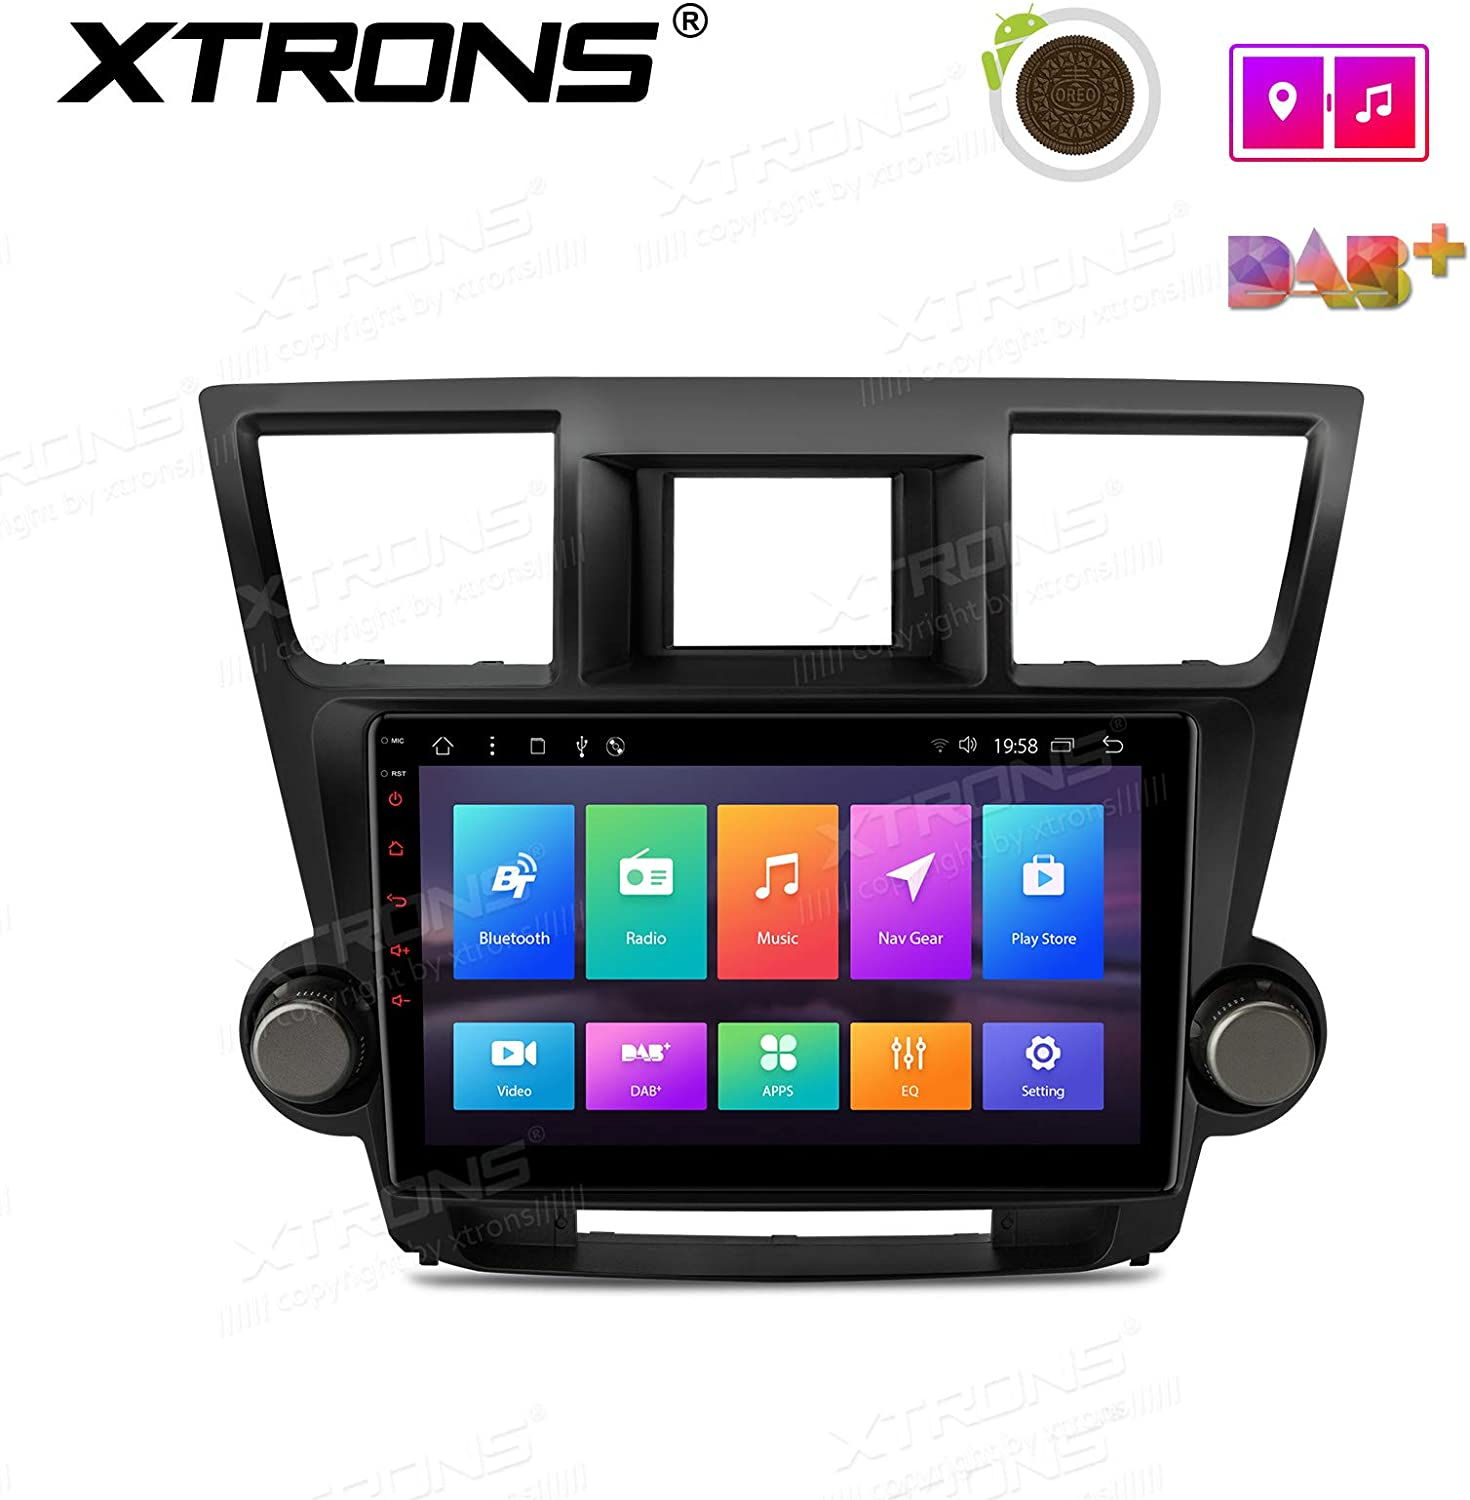 XTRONS 10.1 inch Touch Display Android 8.1 Car Stereo Radio GPS Navigator with USB SD Port Bluetooth 5.0 Supports WiFi 4G TPMS OBD for Toyota Highlander